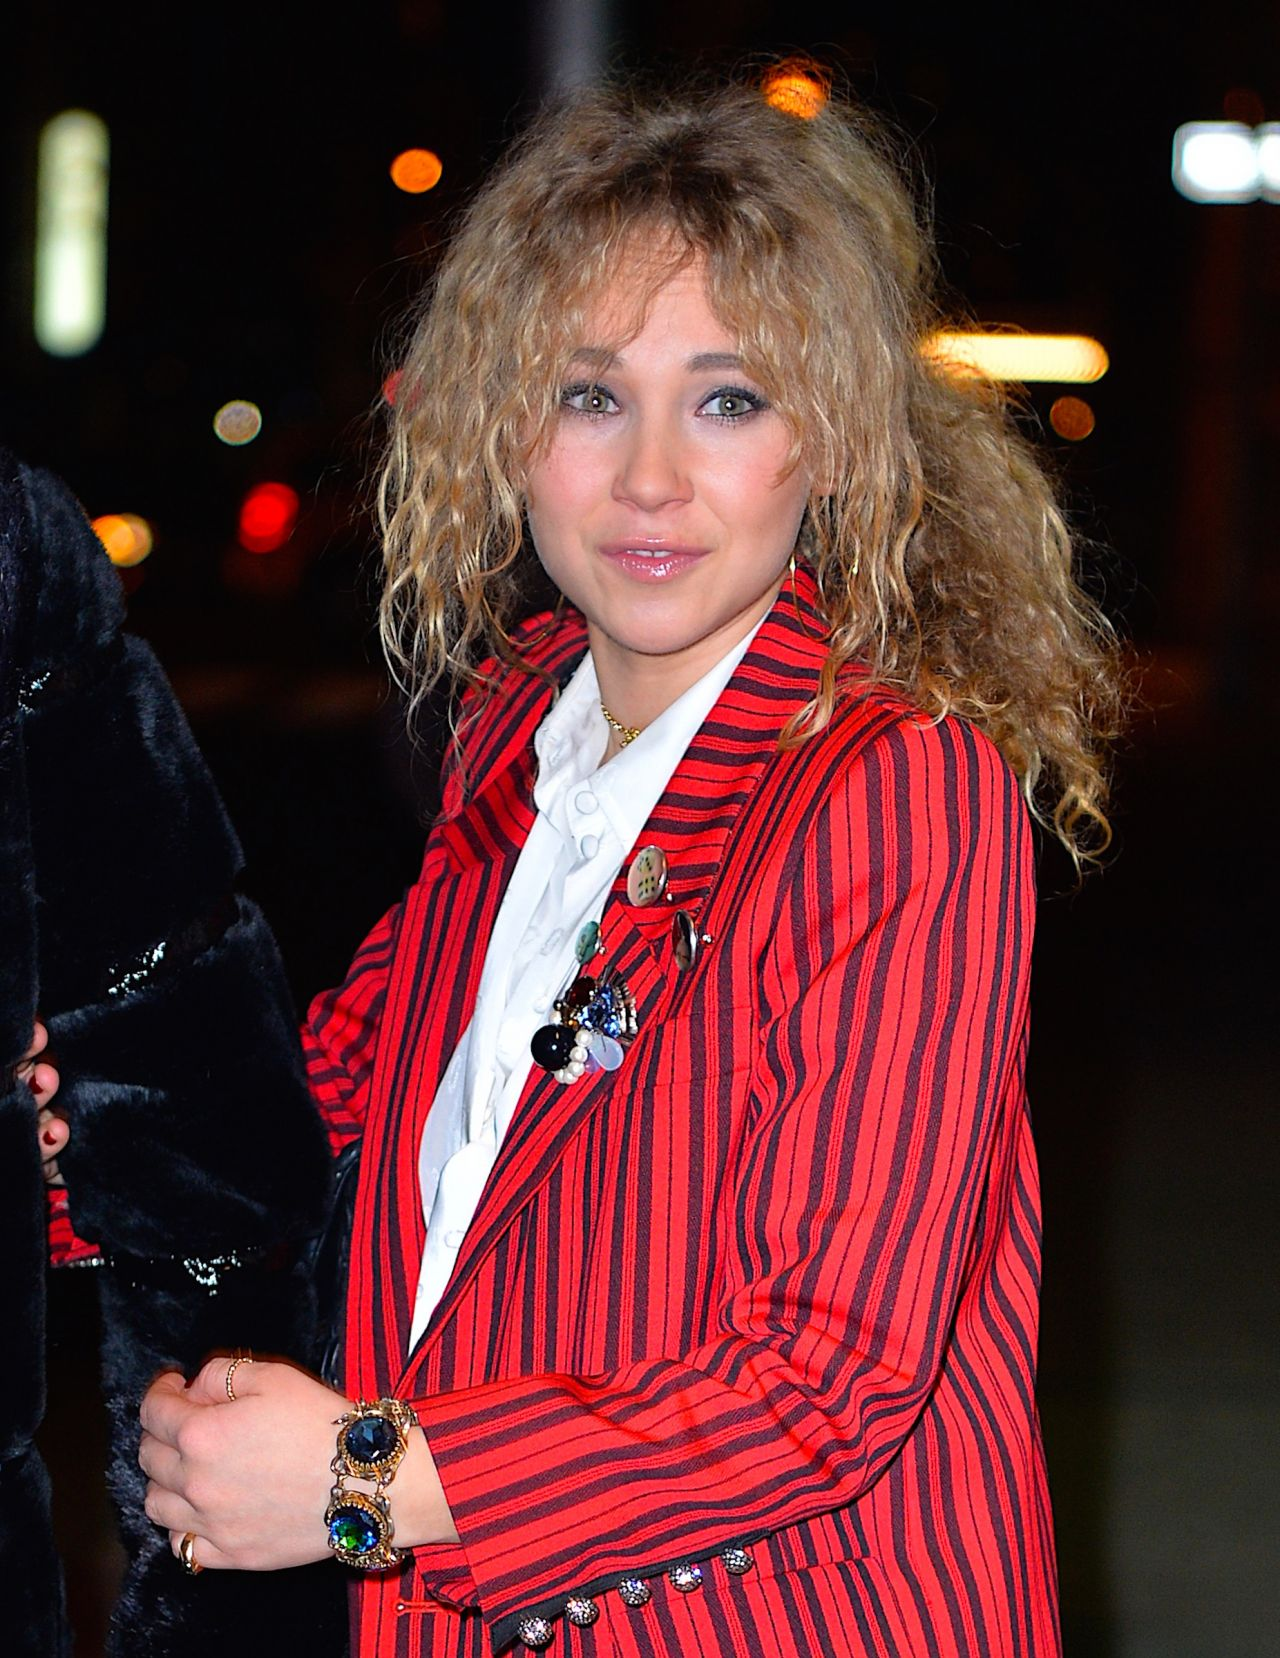 juno-temple-and-emily-tremaine-step-out-together-to-attend-marc-jacob-s-event-at-the-hotel-wolcott-in-new-york-12